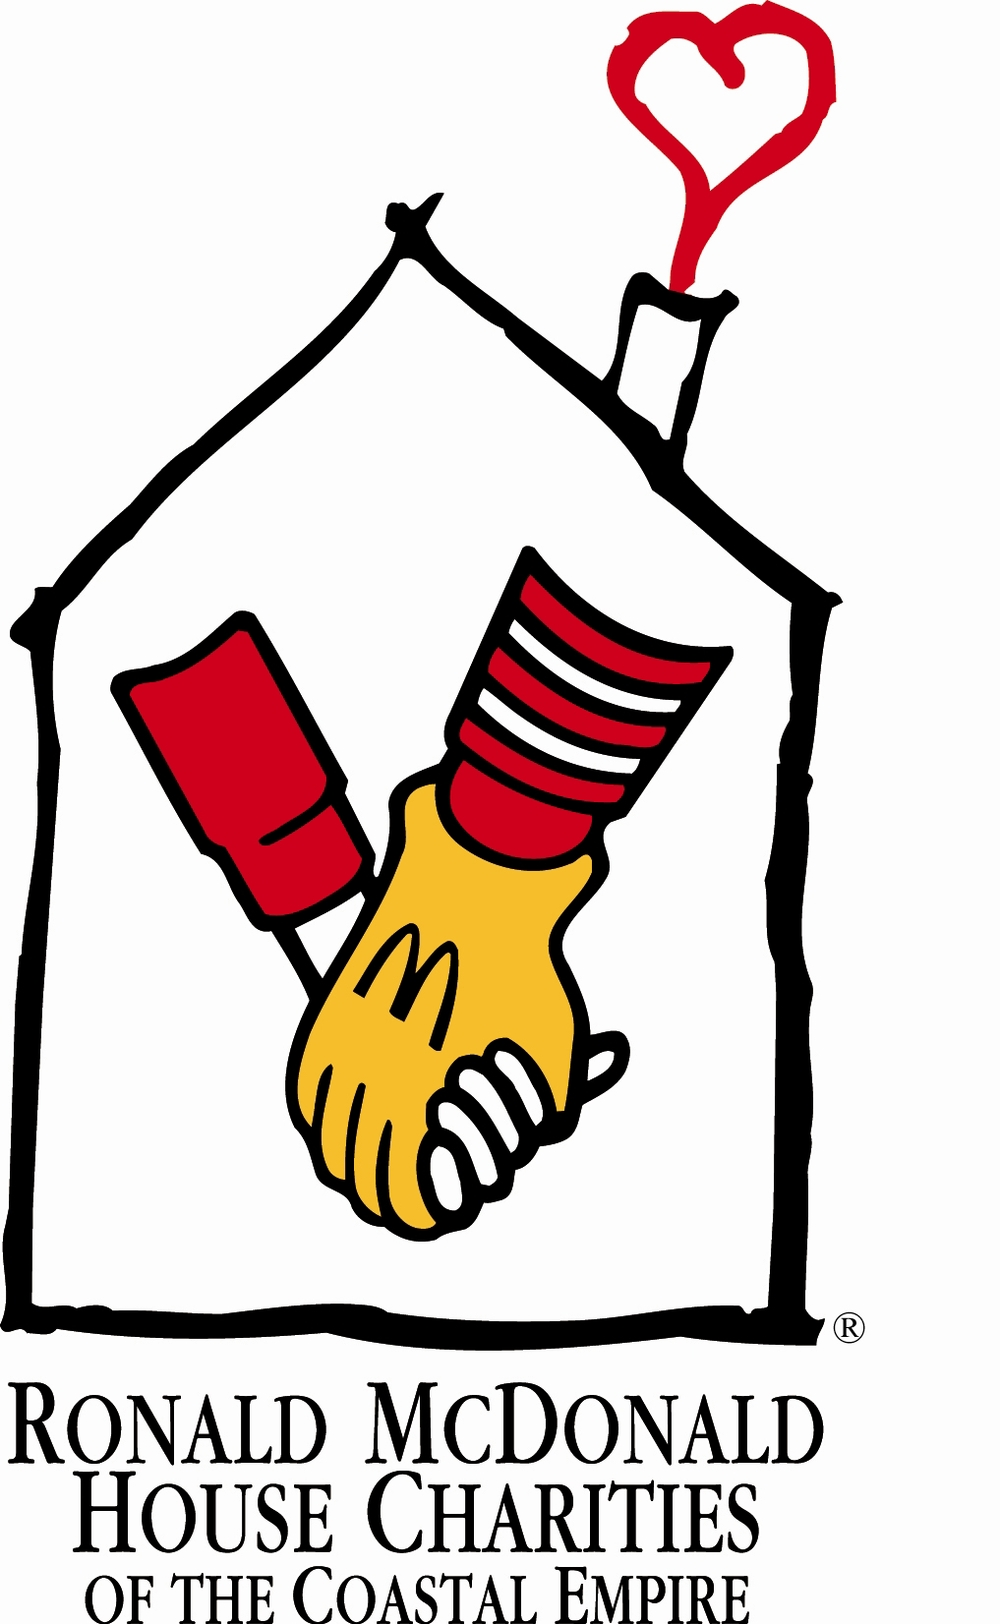 Copy of Ronald McDonald House Charities of the Coastal Empire